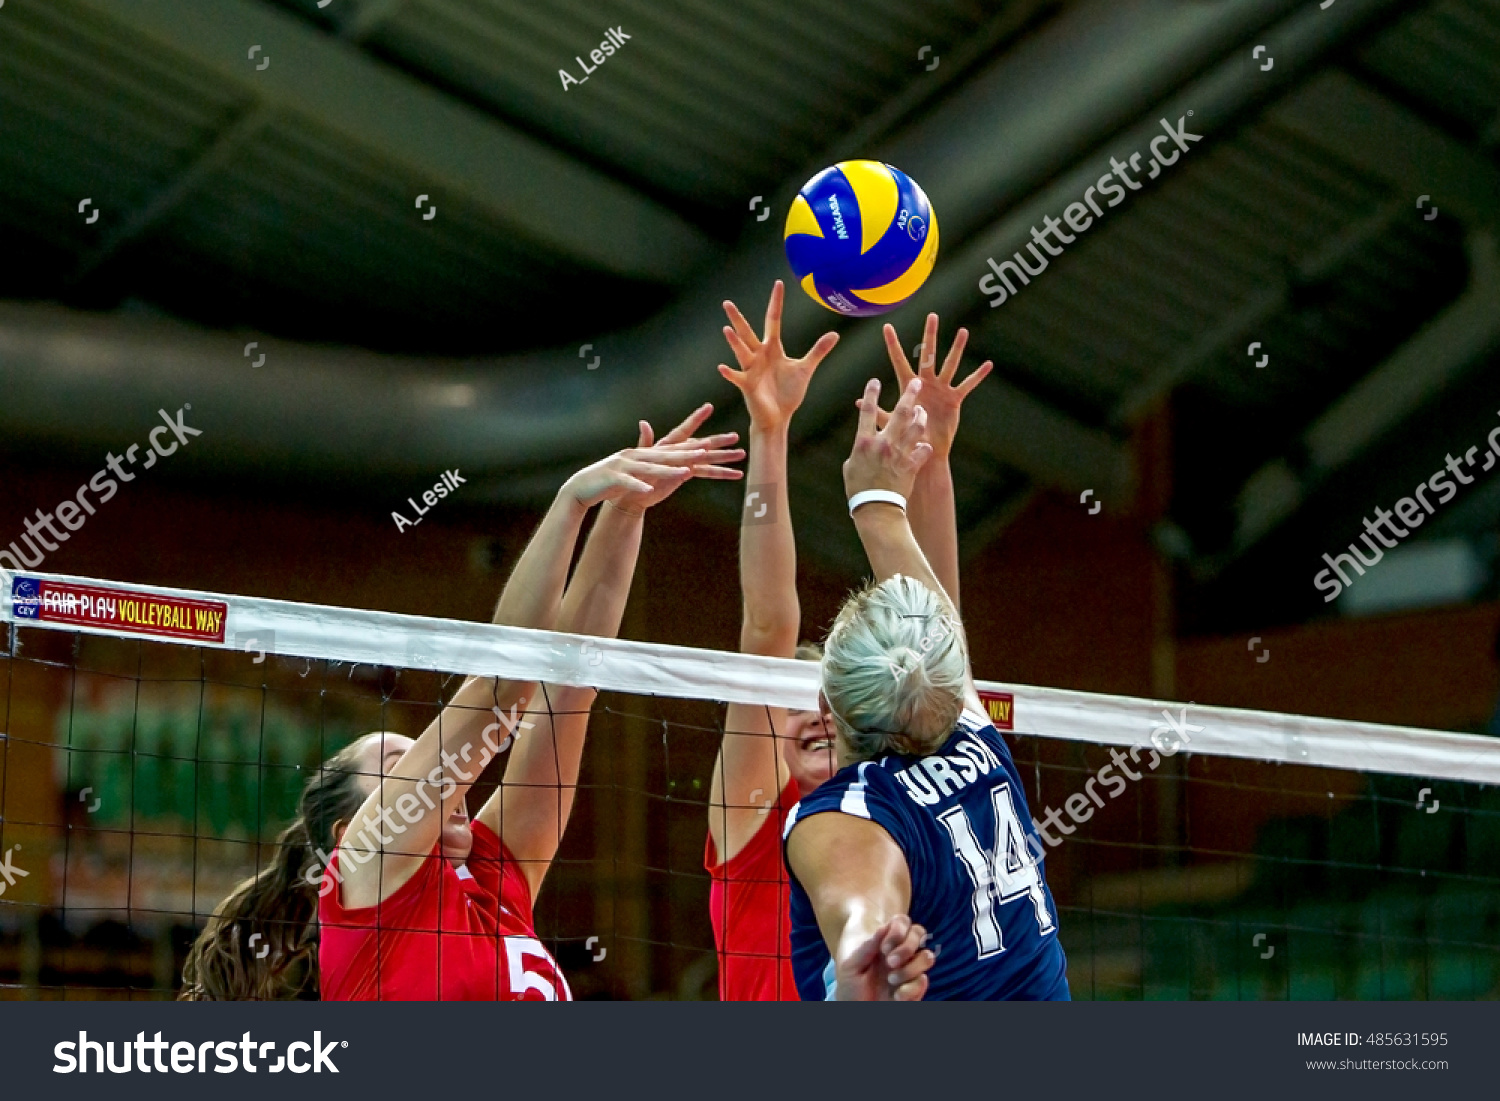 ODESSA UKRAINE September 18 2016 European Championship in women's volleyball Playing national women's teams of Austria and Lithuania in South Odessa 3 0 Tense game volleyboll Austria in red